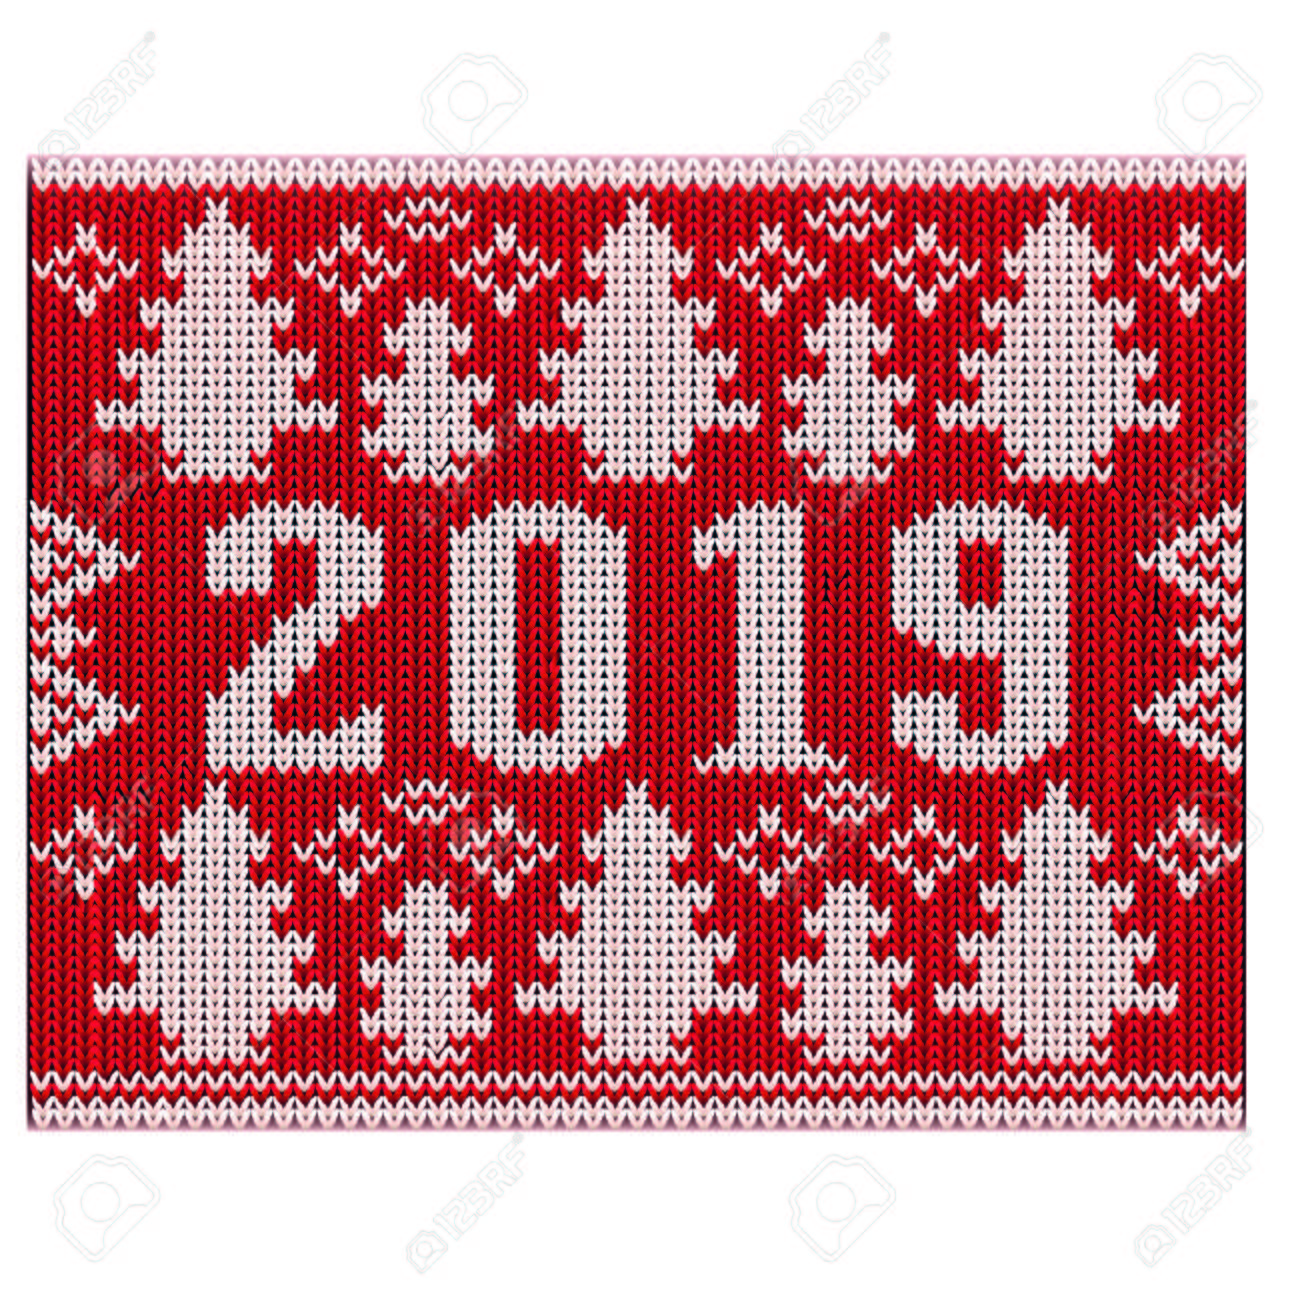 Christmas Jumper 2019 New Year Knitted Texture Vector Illustration